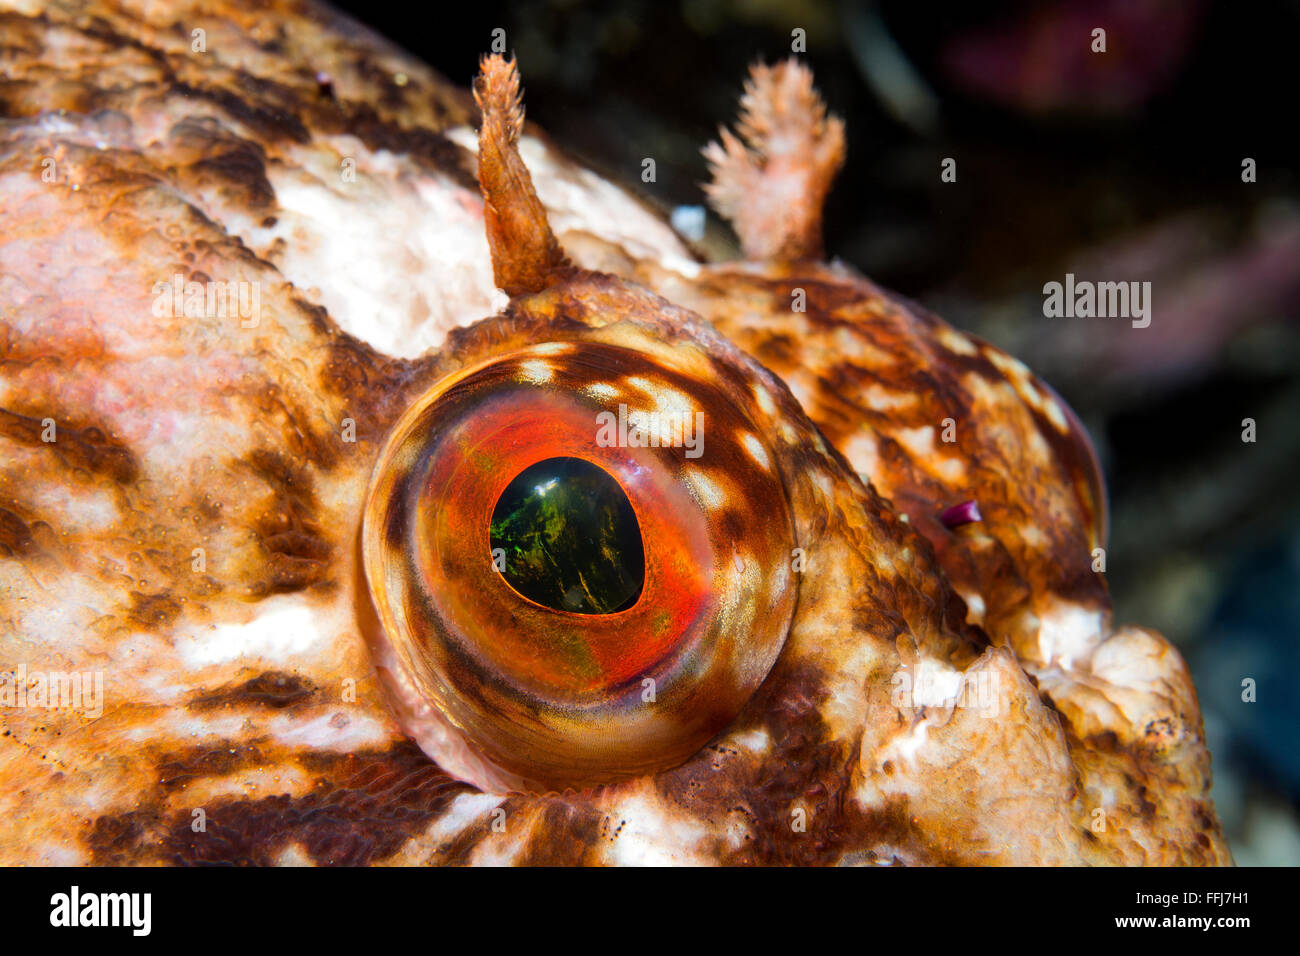 Close-up of the eye of a curious cabezon fish in cool California water - Stock Image